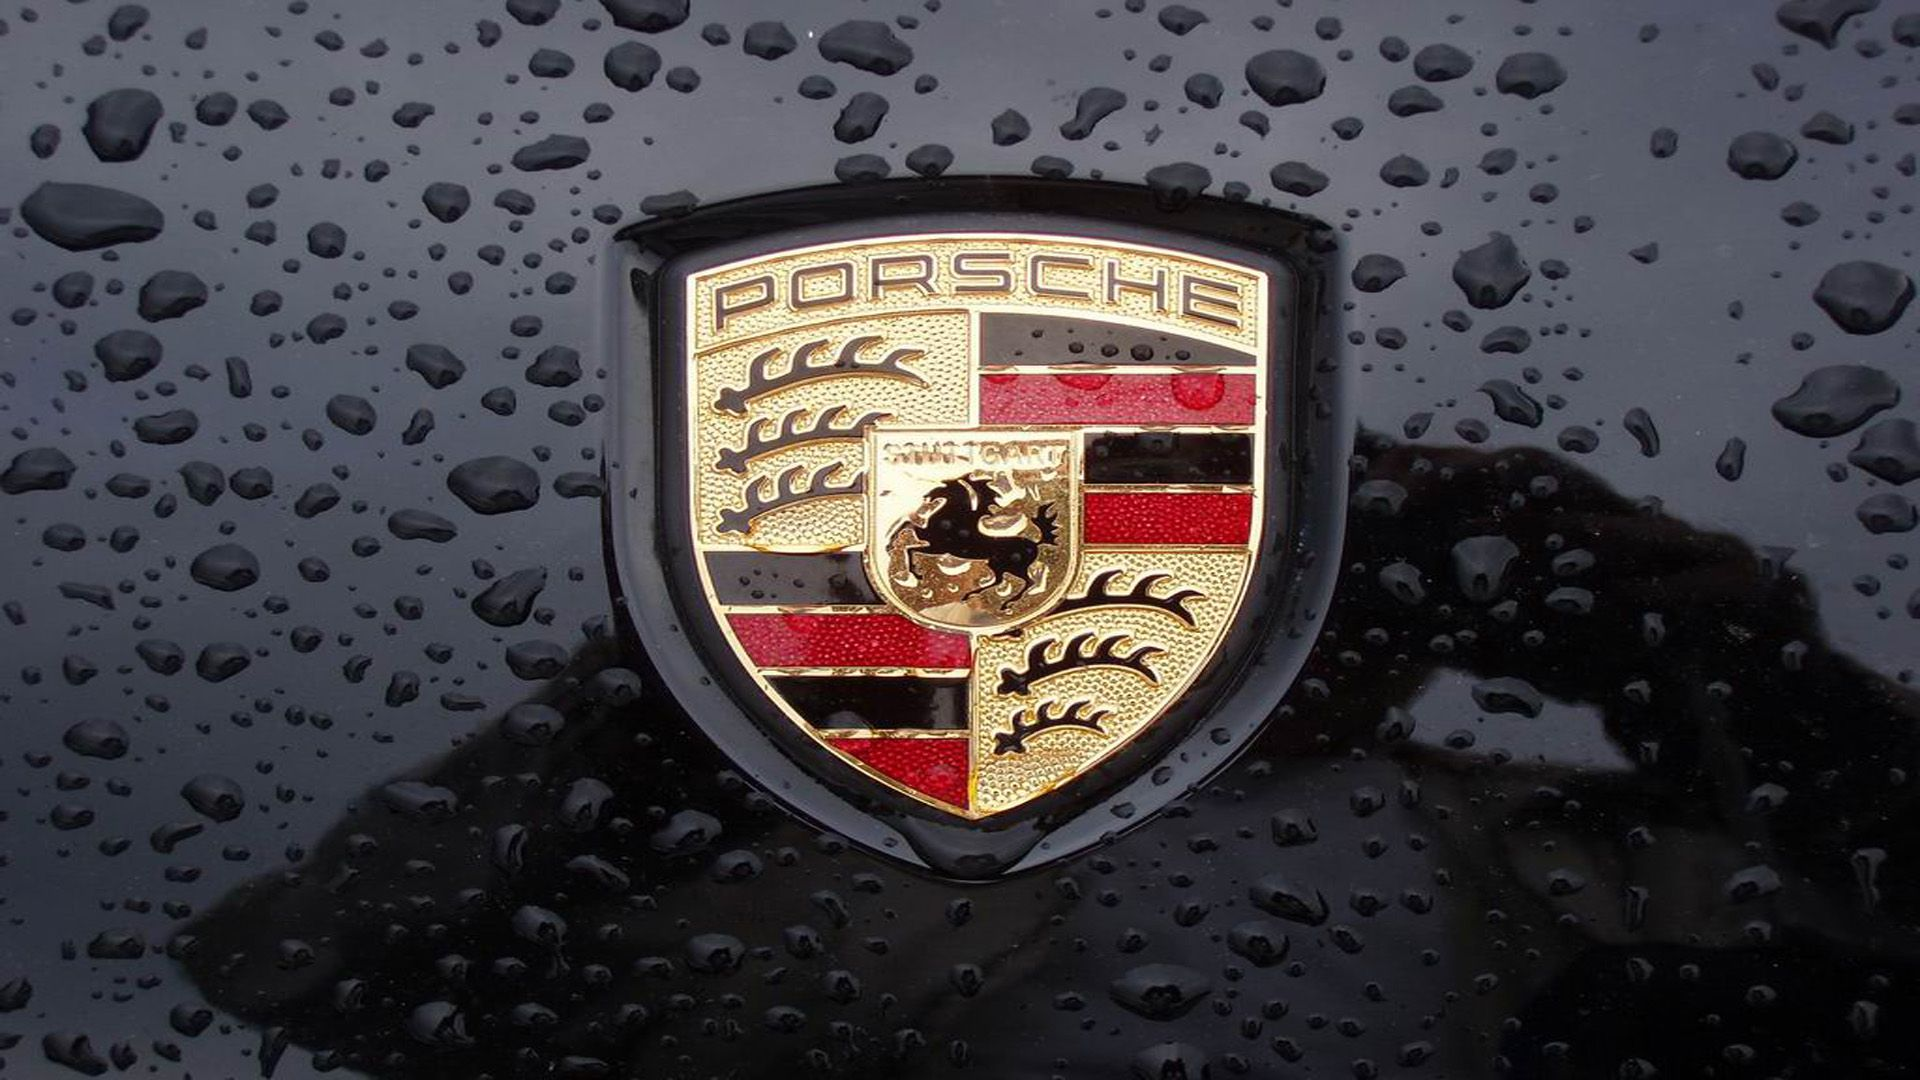 Porsche Logo Wallpapers Pictures Images Free Wallpapers